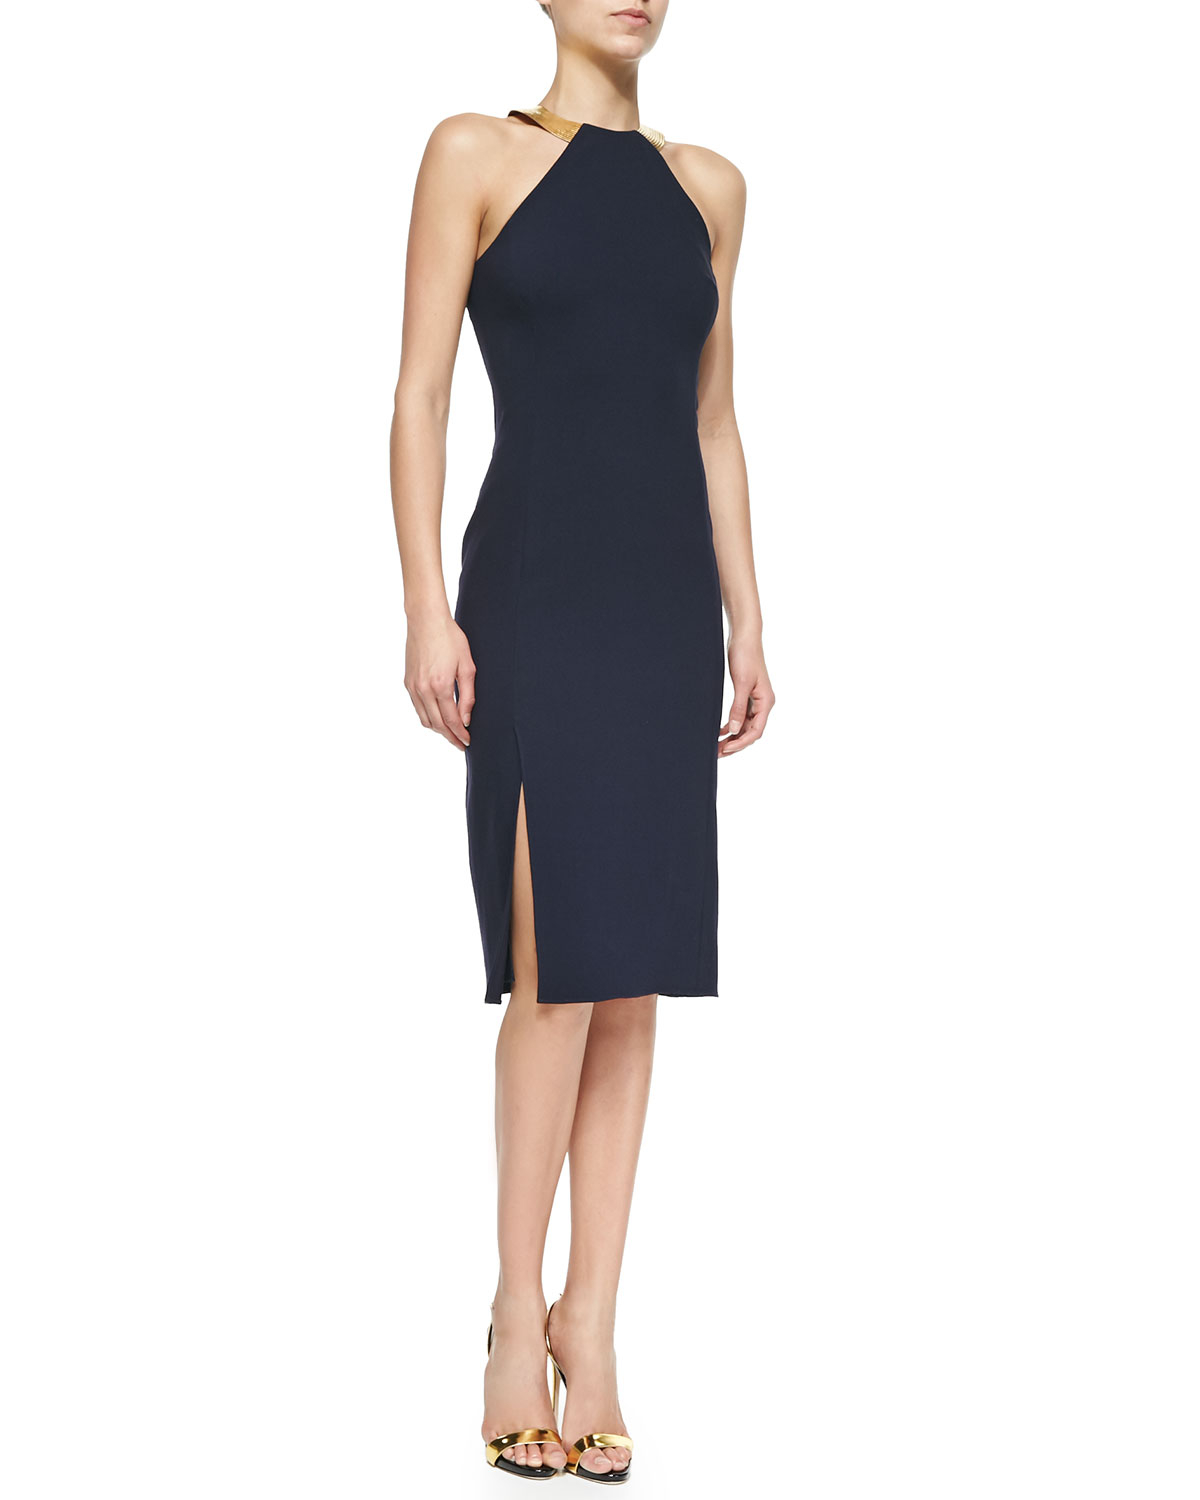 ralph lauren collection silvia embellished halter sheath dress in blue navy lyst. Black Bedroom Furniture Sets. Home Design Ideas